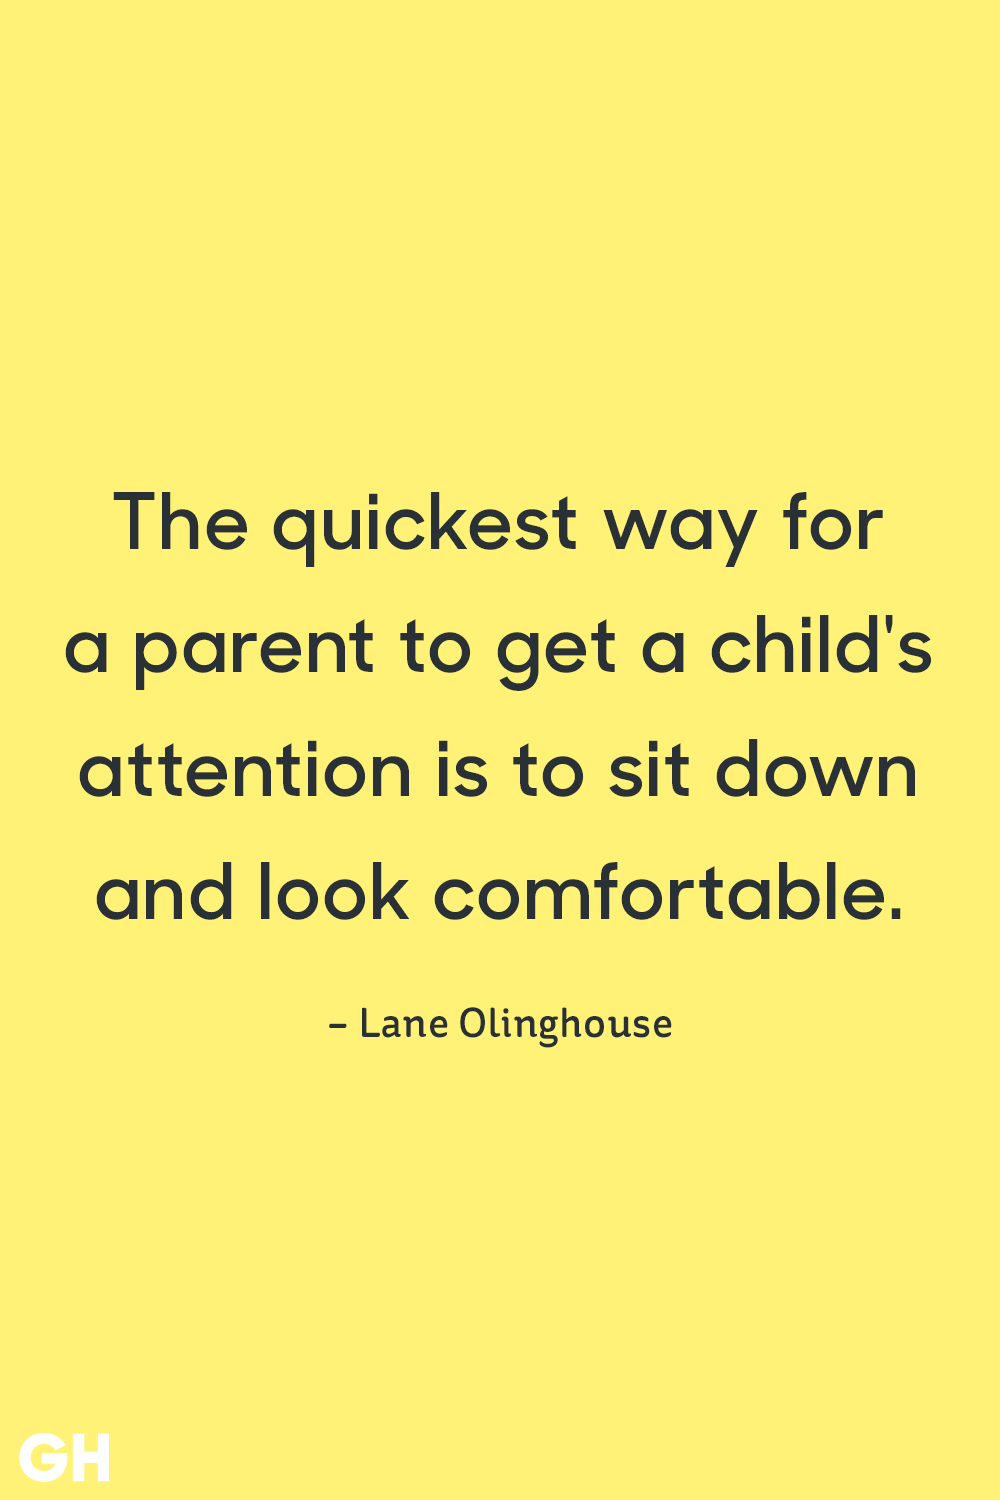 25 Funny Parenting Quotes - Hilarious Quotes About Being a Parent